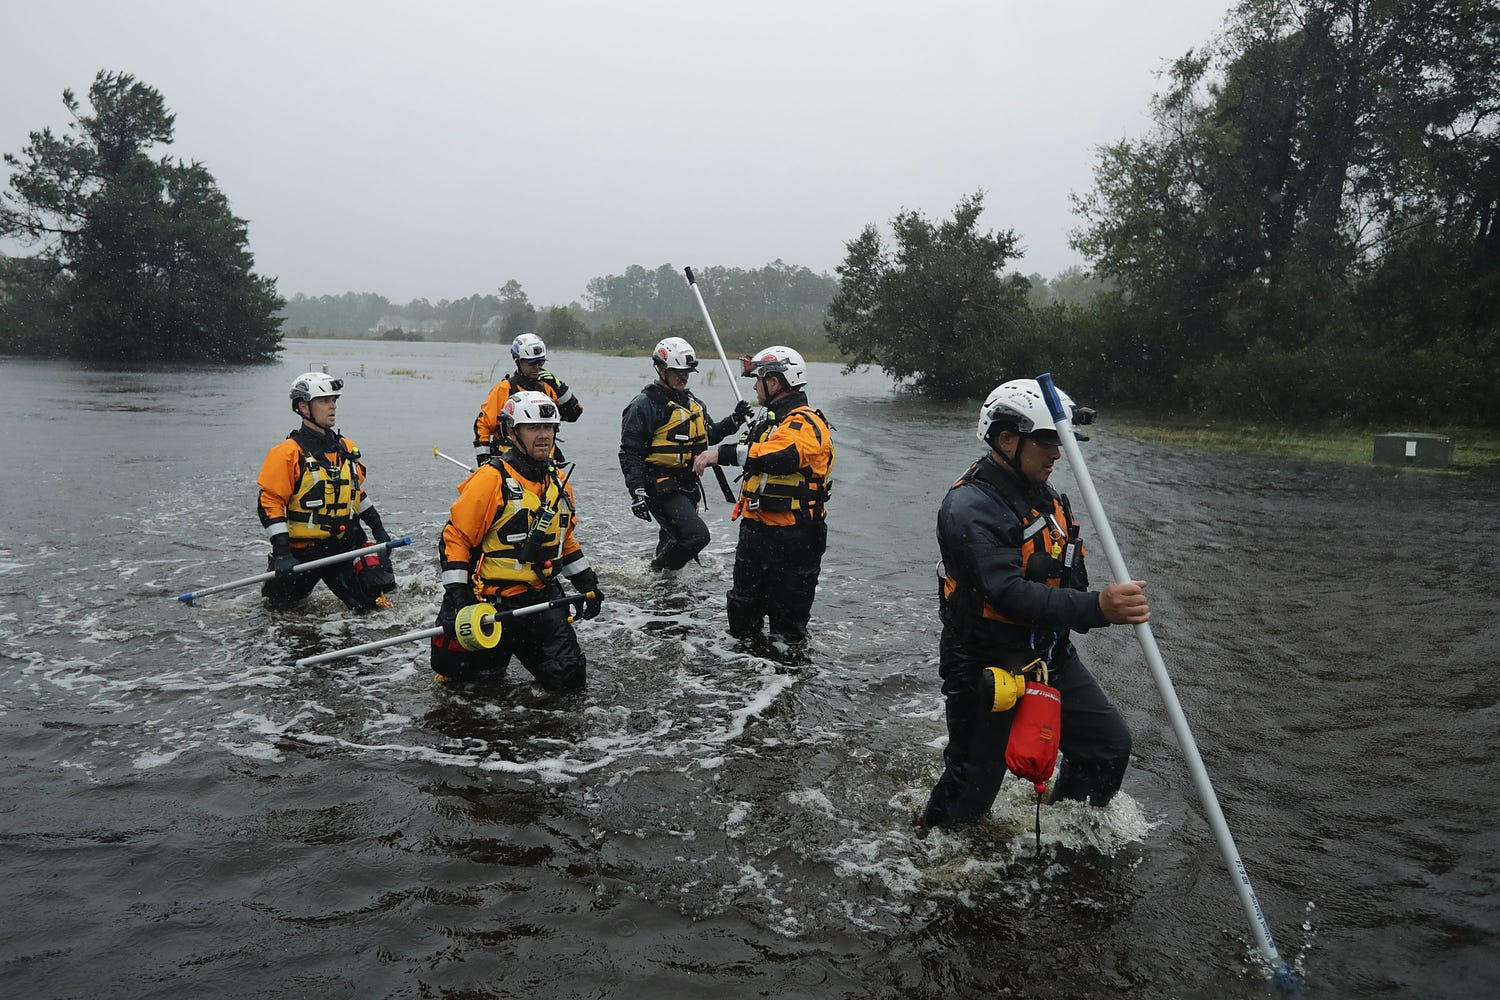 Members of the FEMA Urban Search and Rescue Task Force 4 from Oakland, California, search a flooded neighborhood for evacuees during Hurricane Florence, Friday, in Fairfield Harbour, N.C.